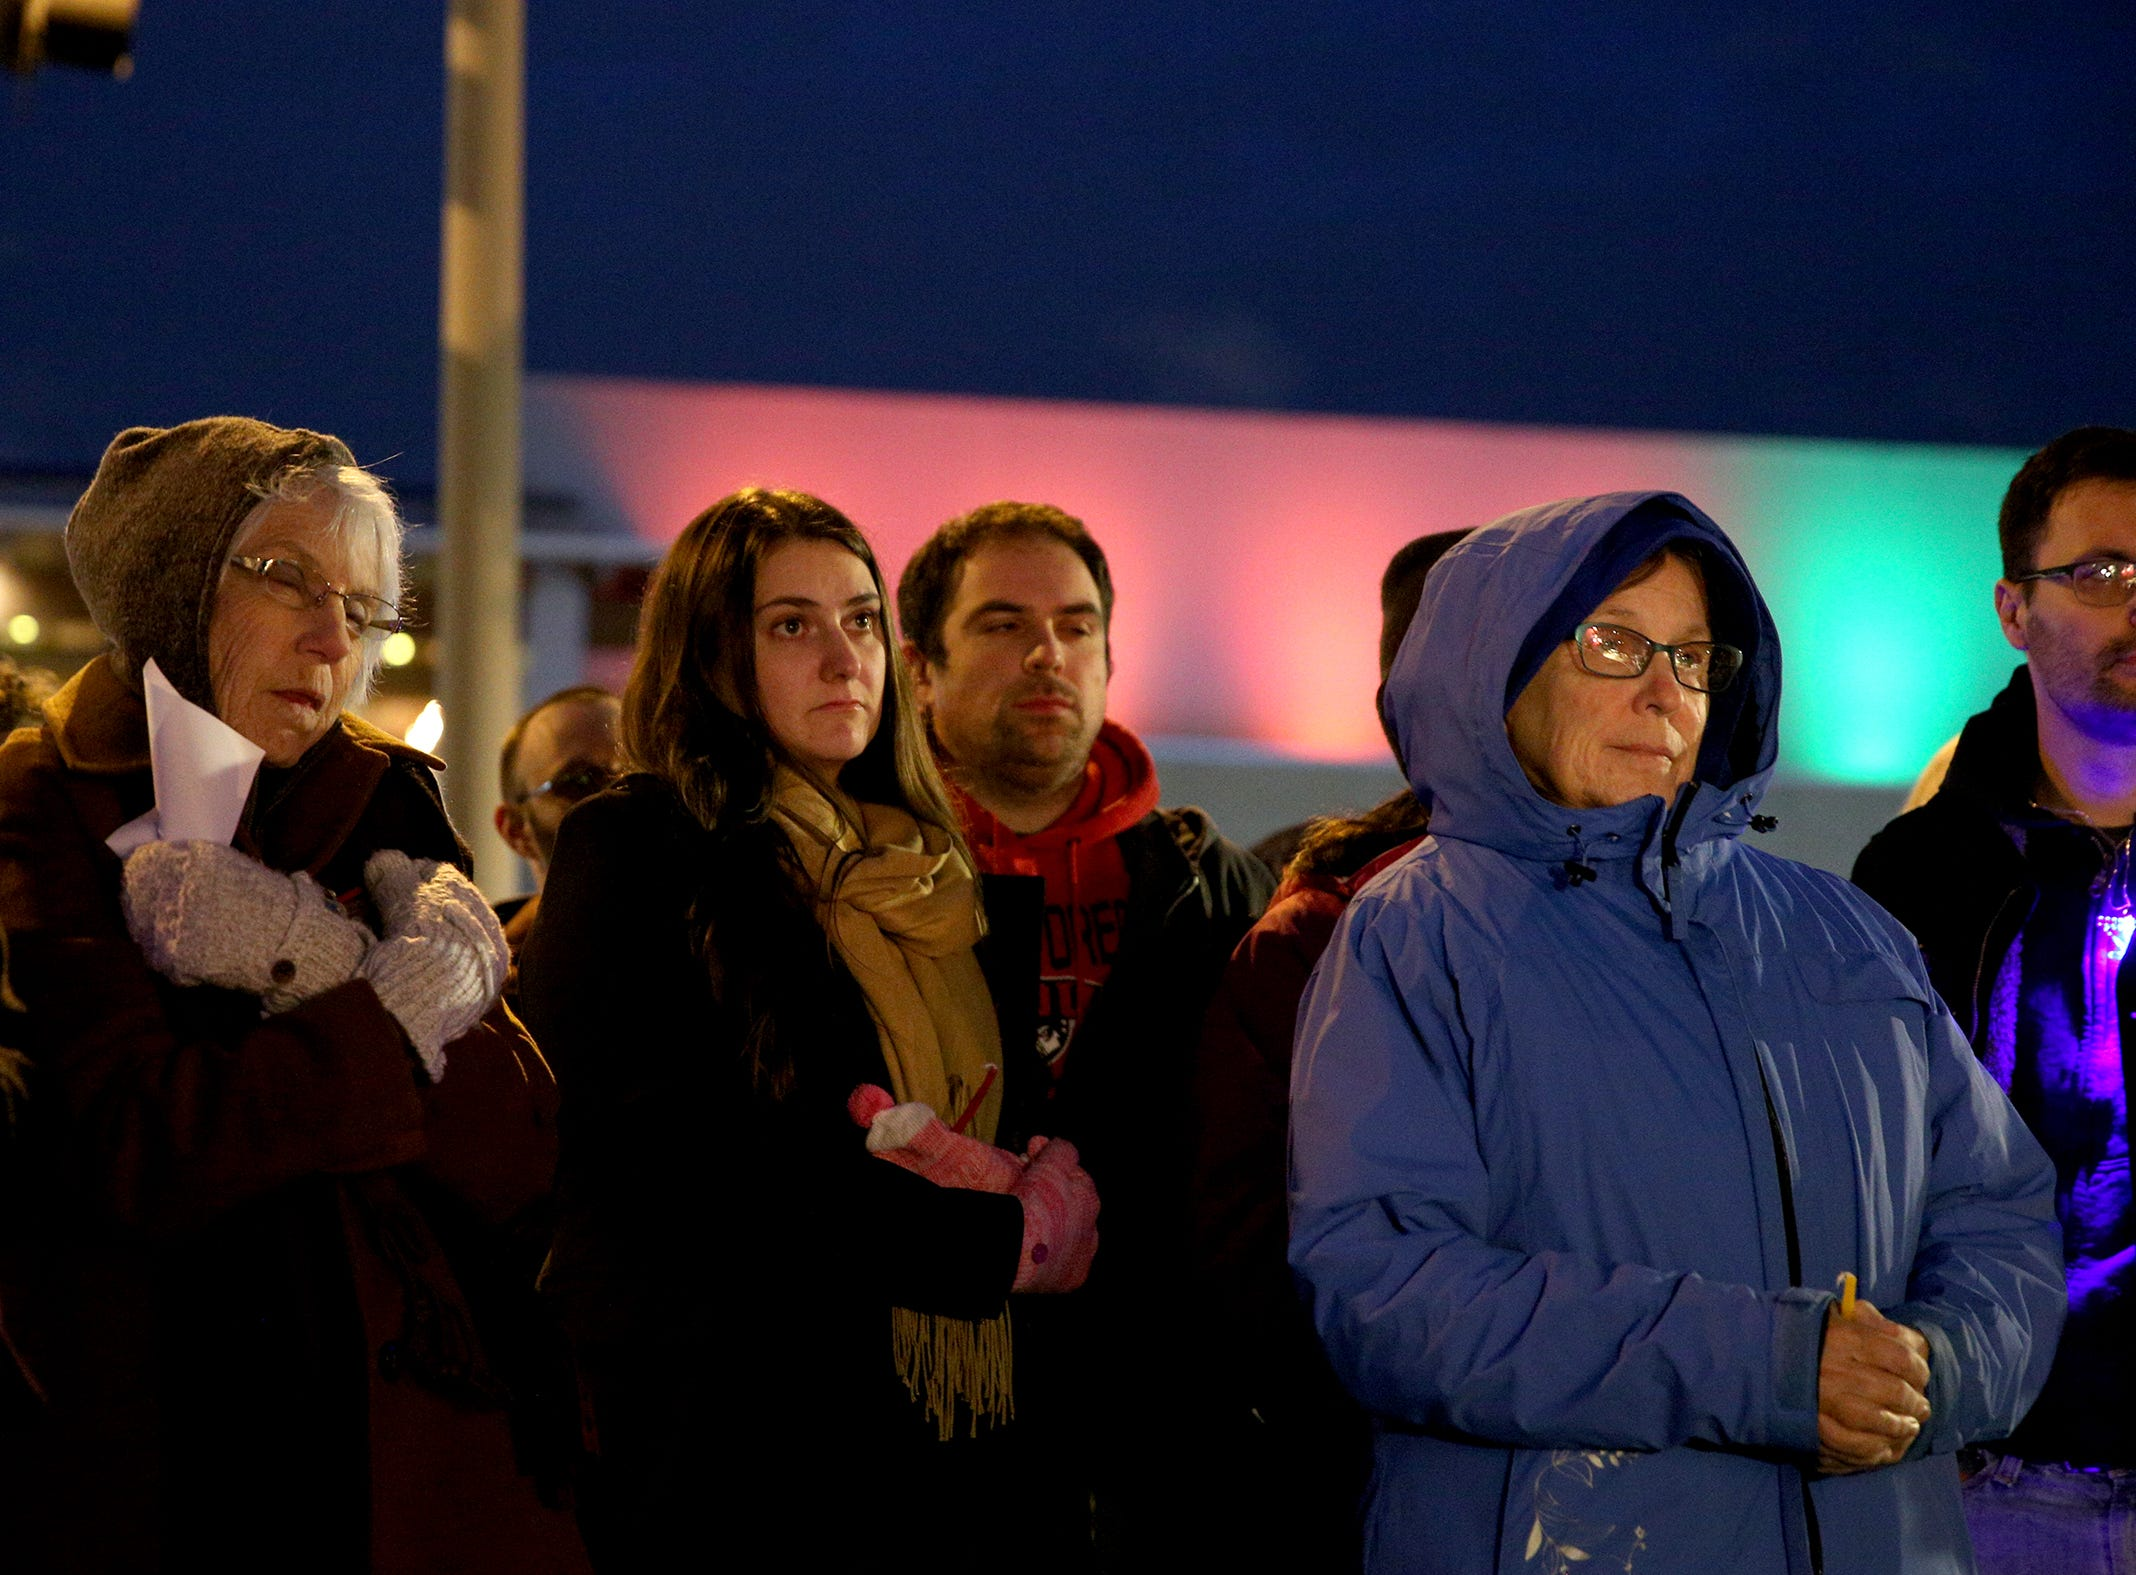 Attendees listen to Rabbi Avrohom Perlstein during a celebration on the first day of Hanukkah at Mirror Park in downtown Salem on Sunday, Dec. 2, 2018.